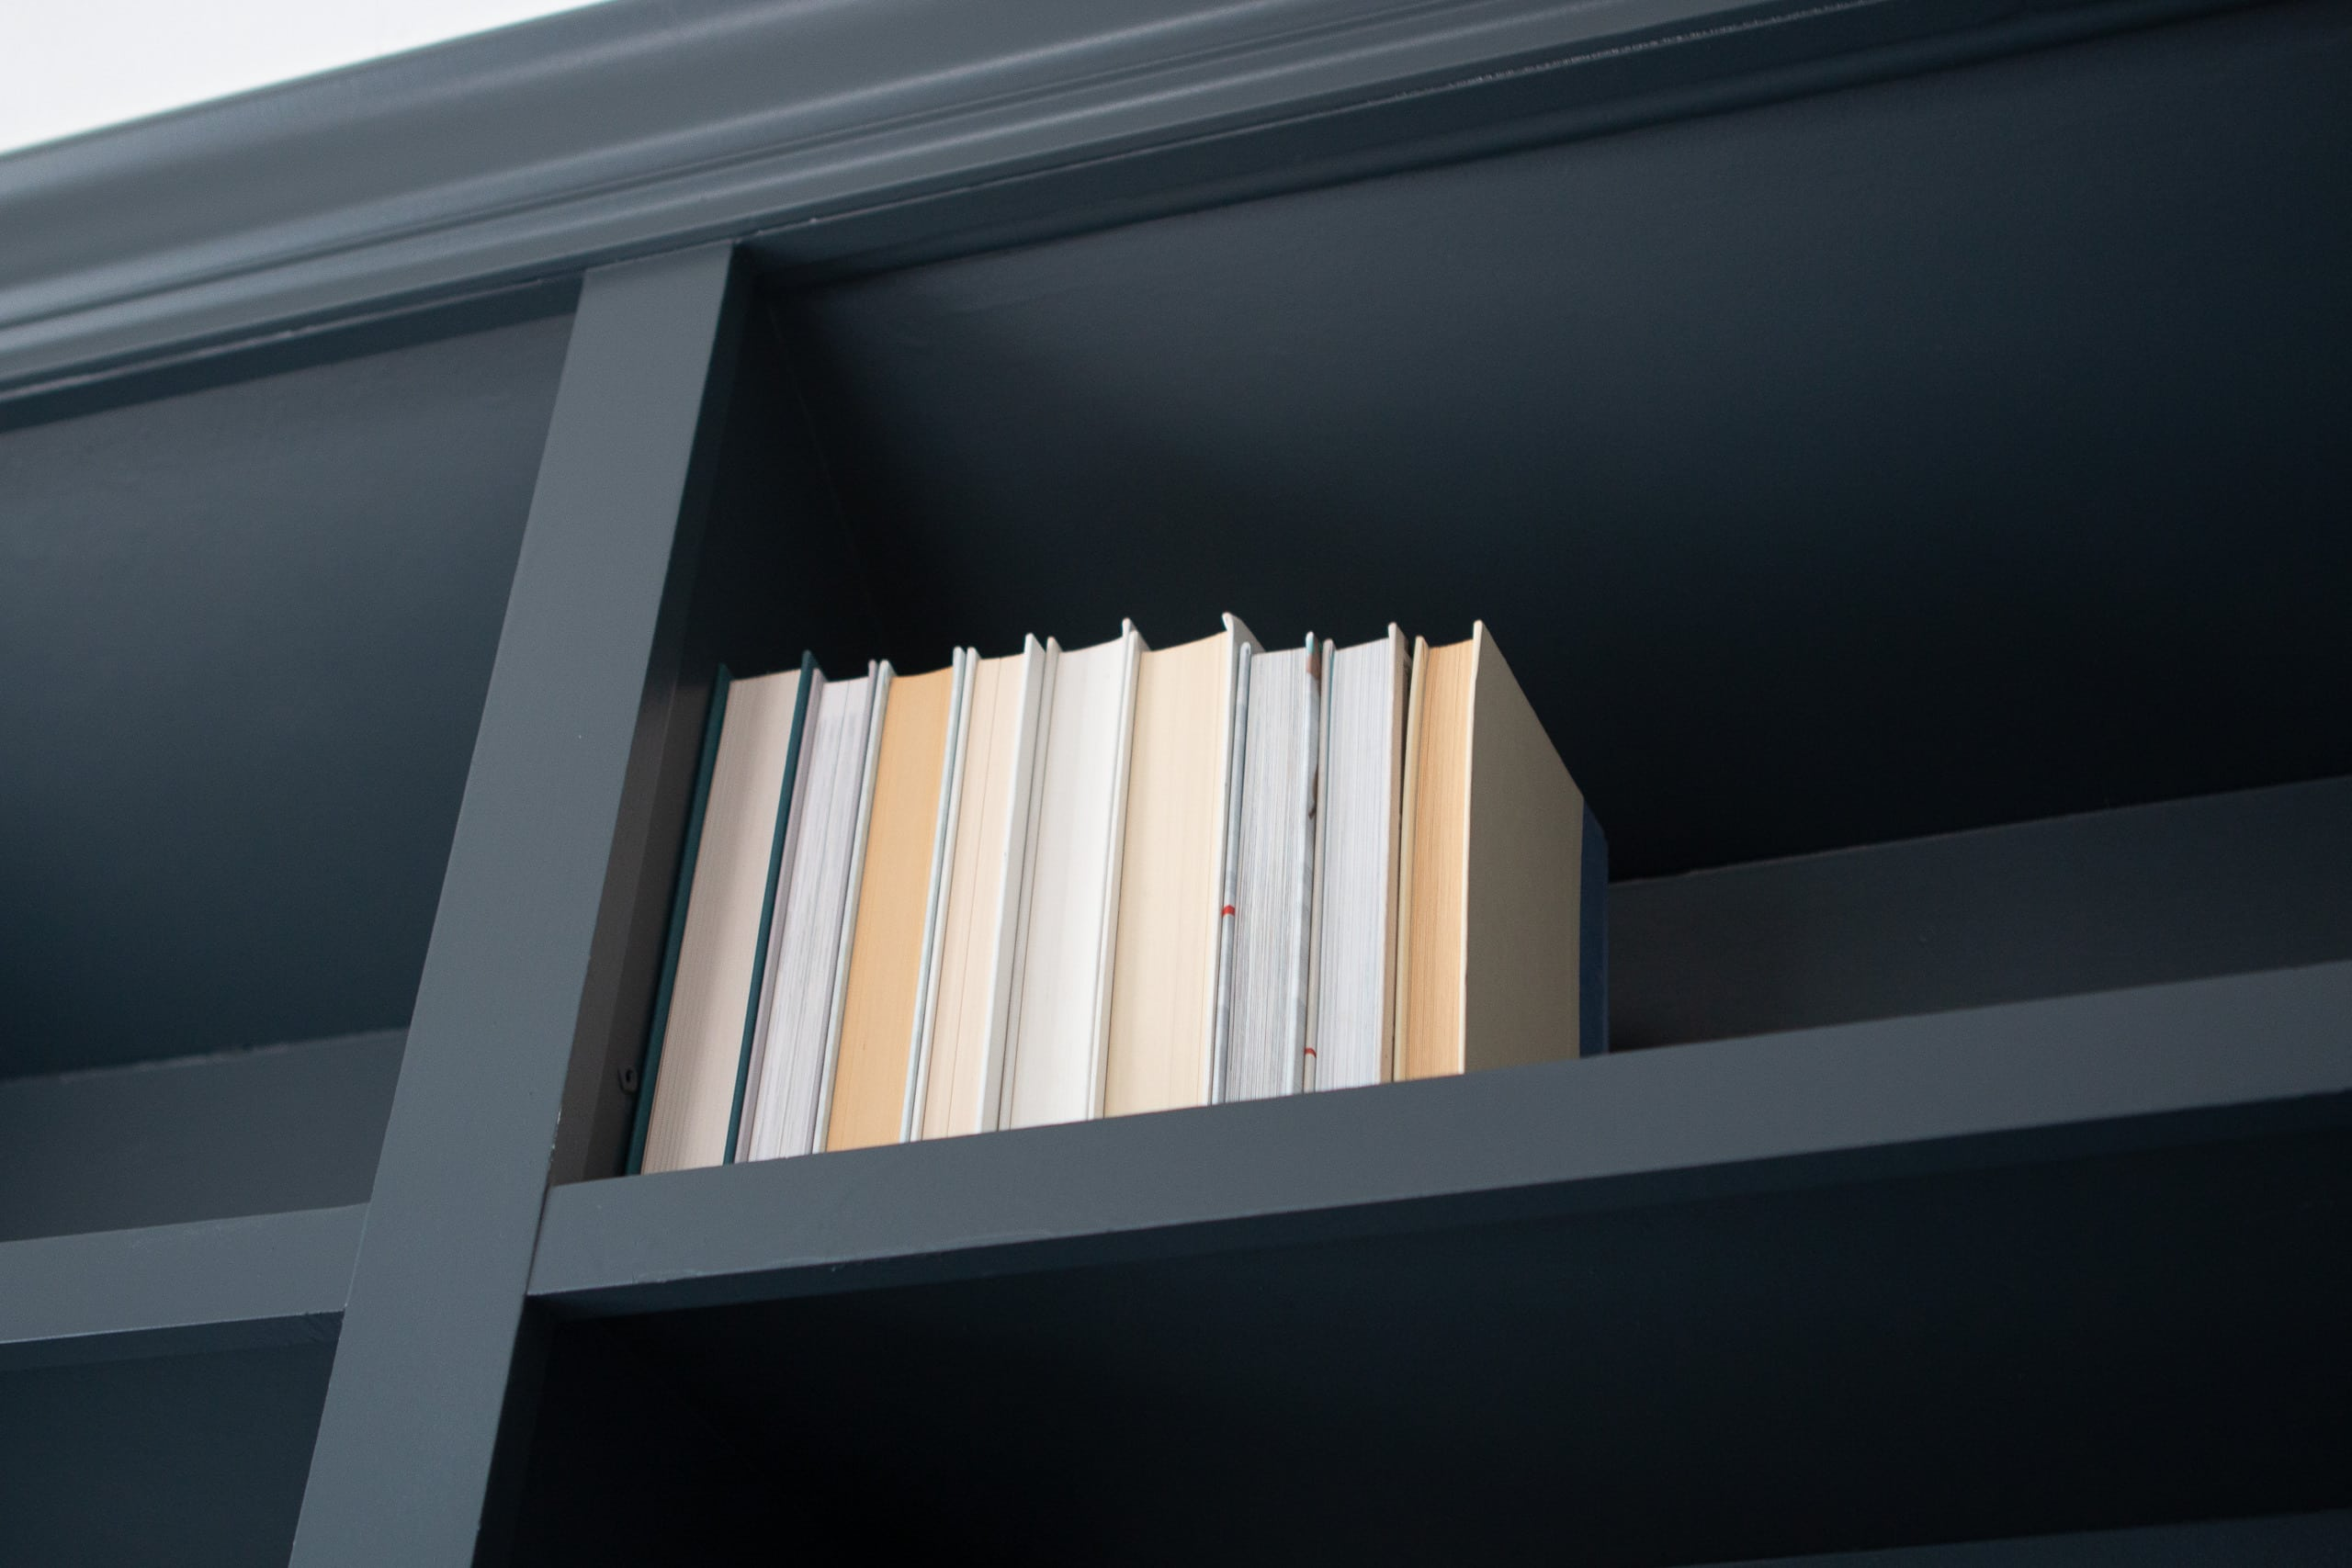 Turning books around to hide spines